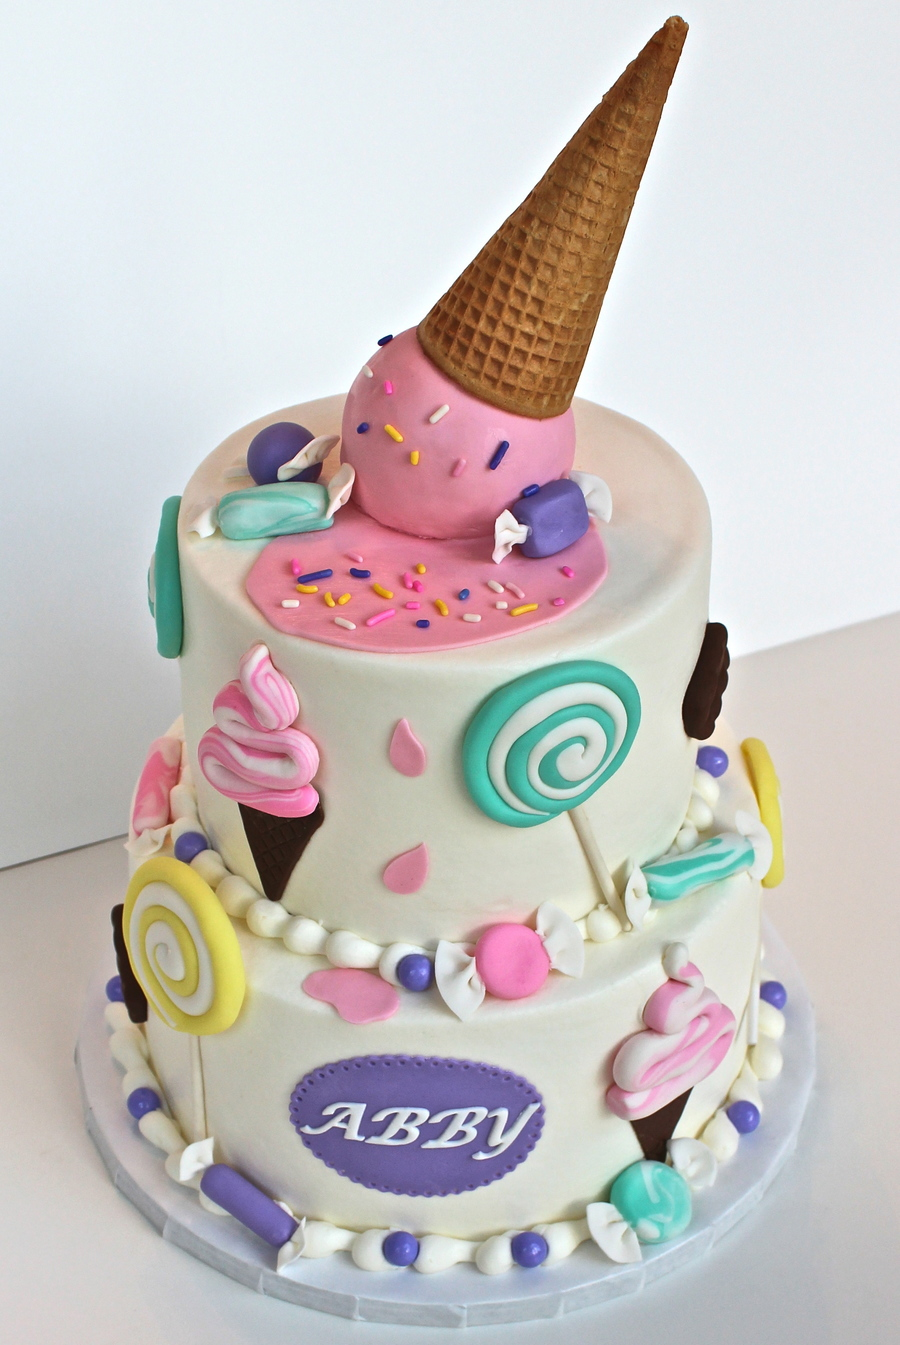 Buttercream Cake With Fondant Decorations Top Ice Cream Ball Is Rkt